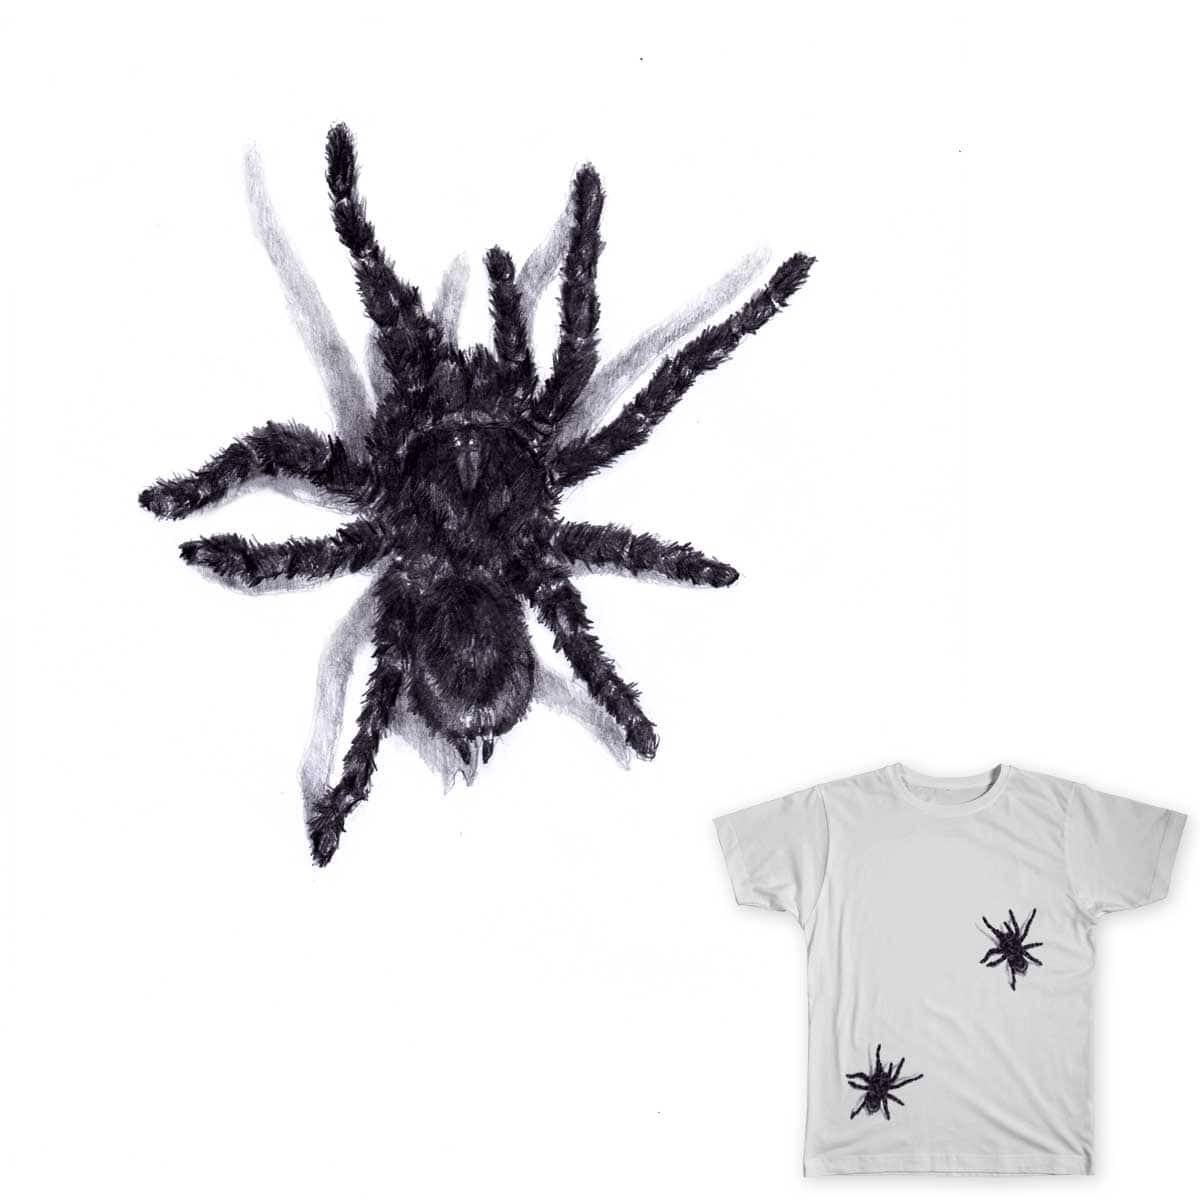 Spiders on your shirt! by juanpaulomanalo on Threadless